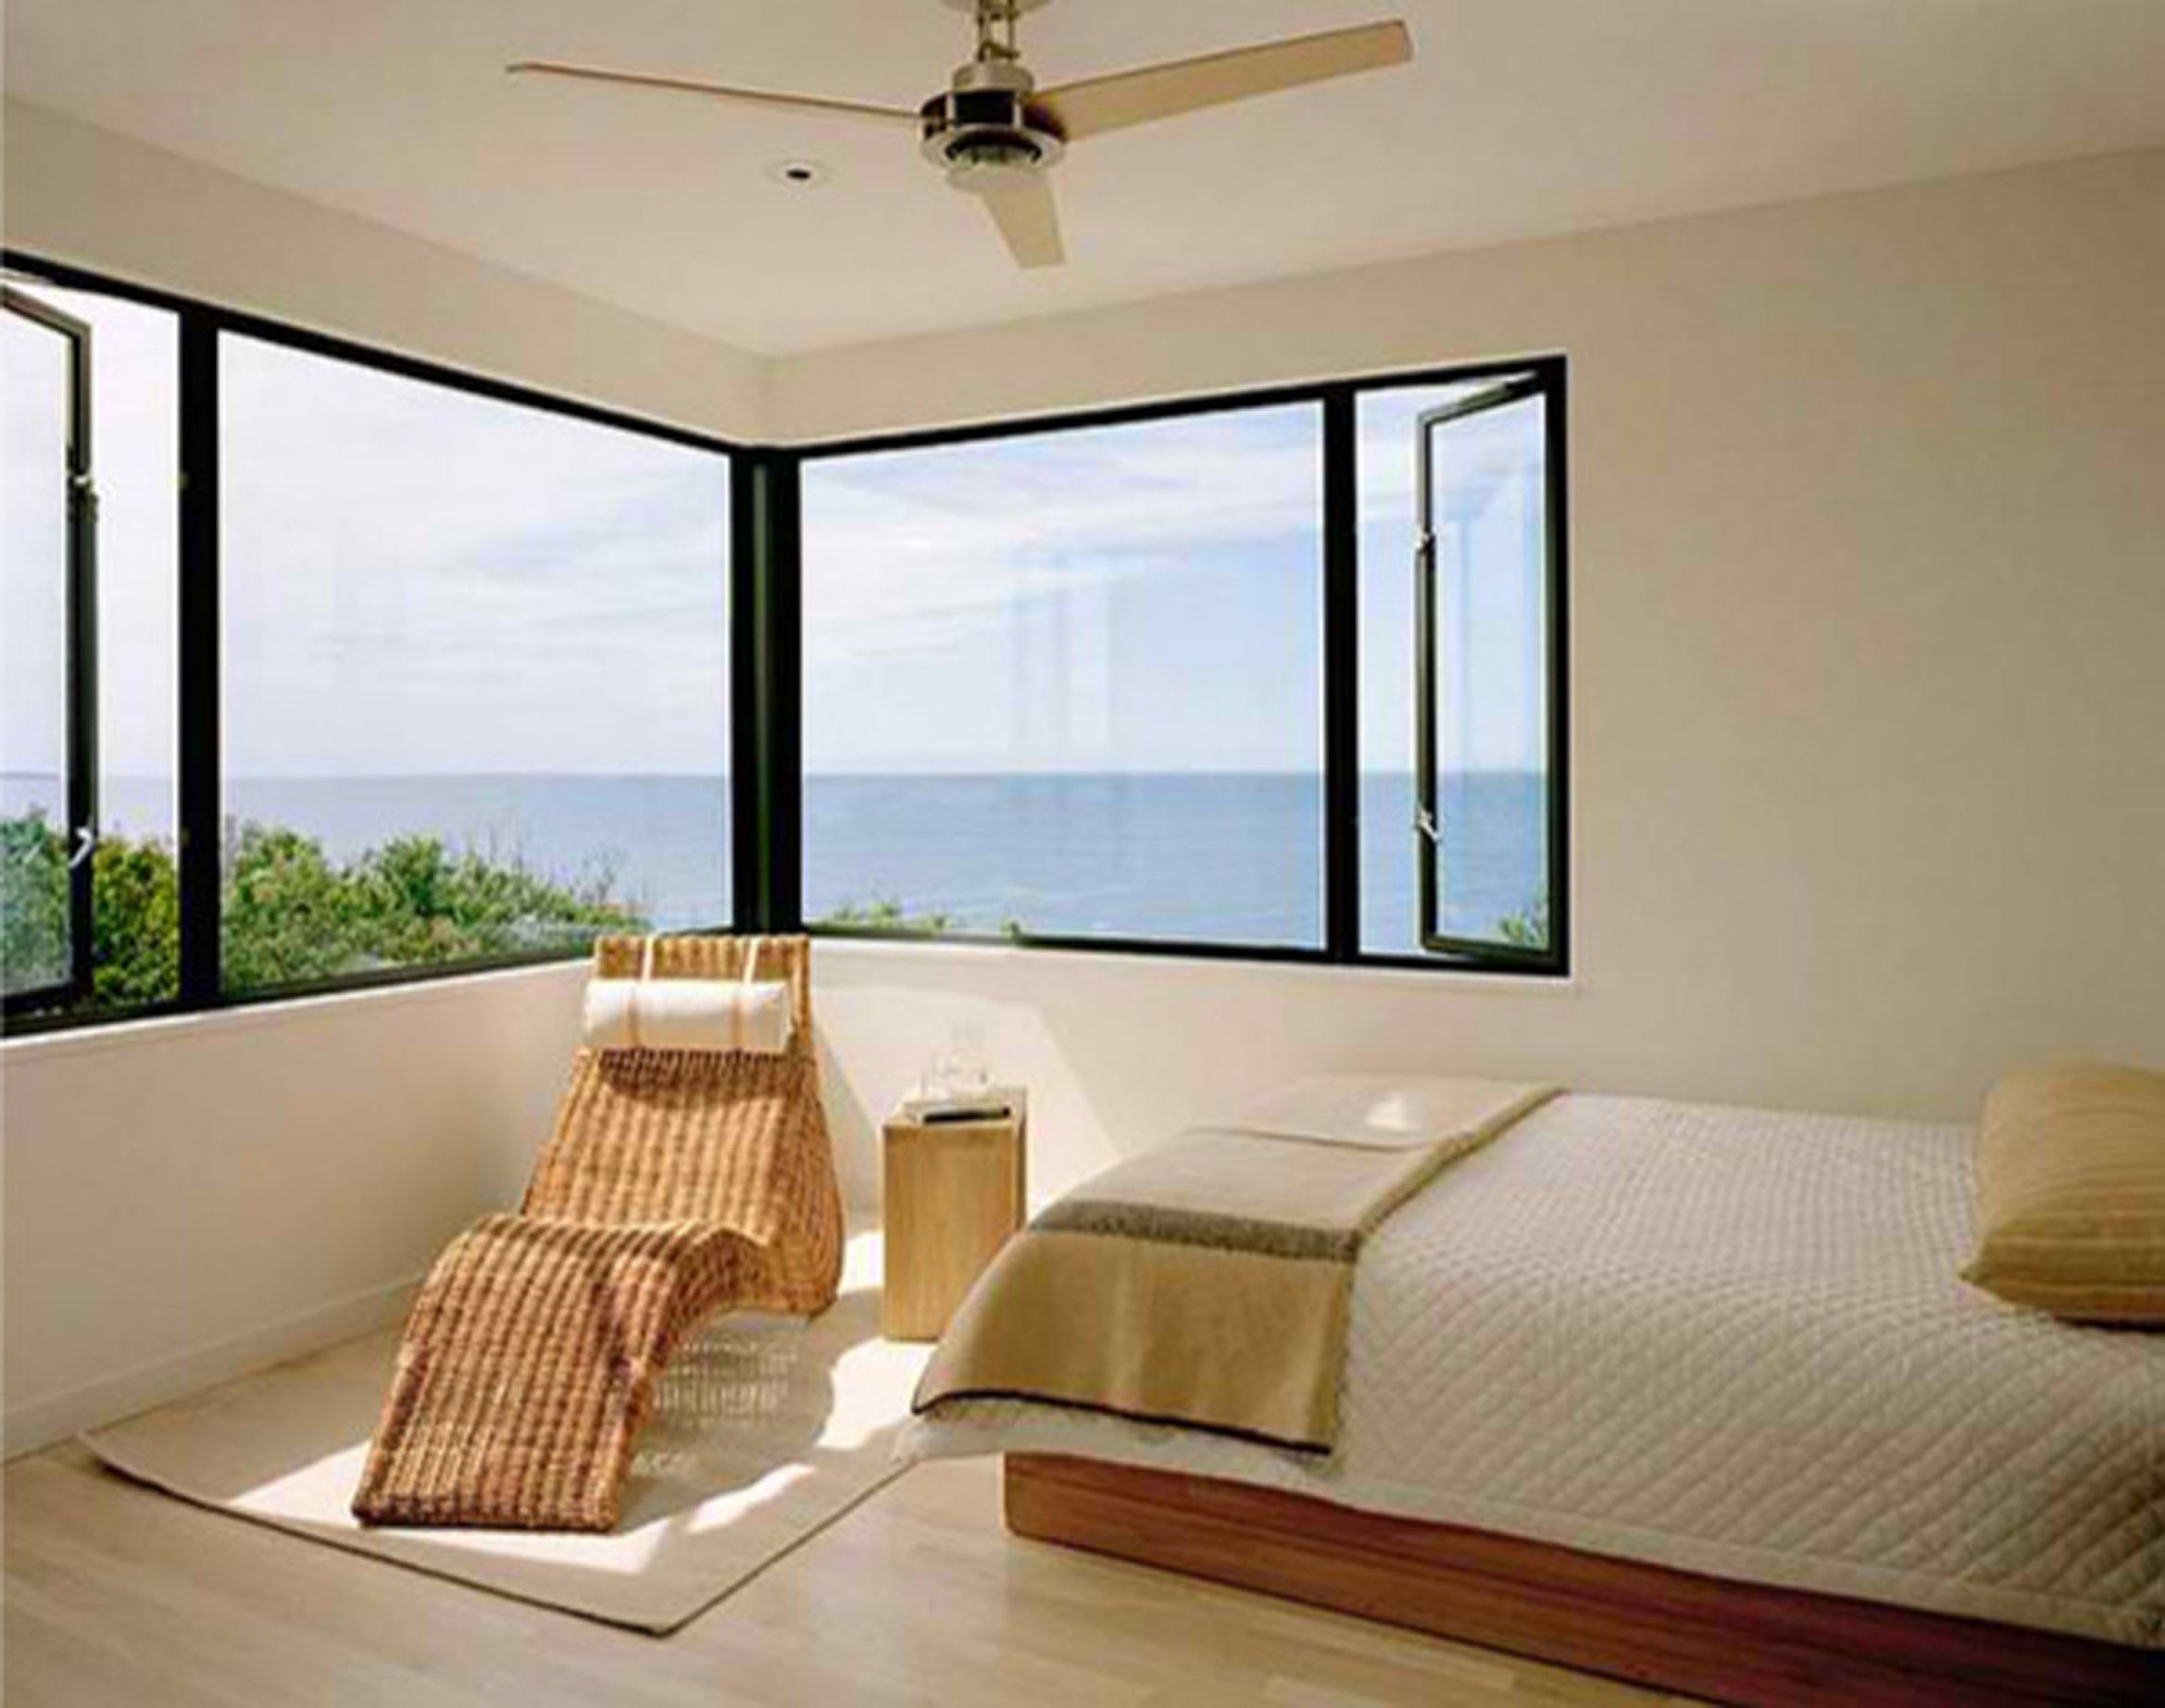 Window bedroom design  interior design ideas for small bedrooms contemporary bedroom design